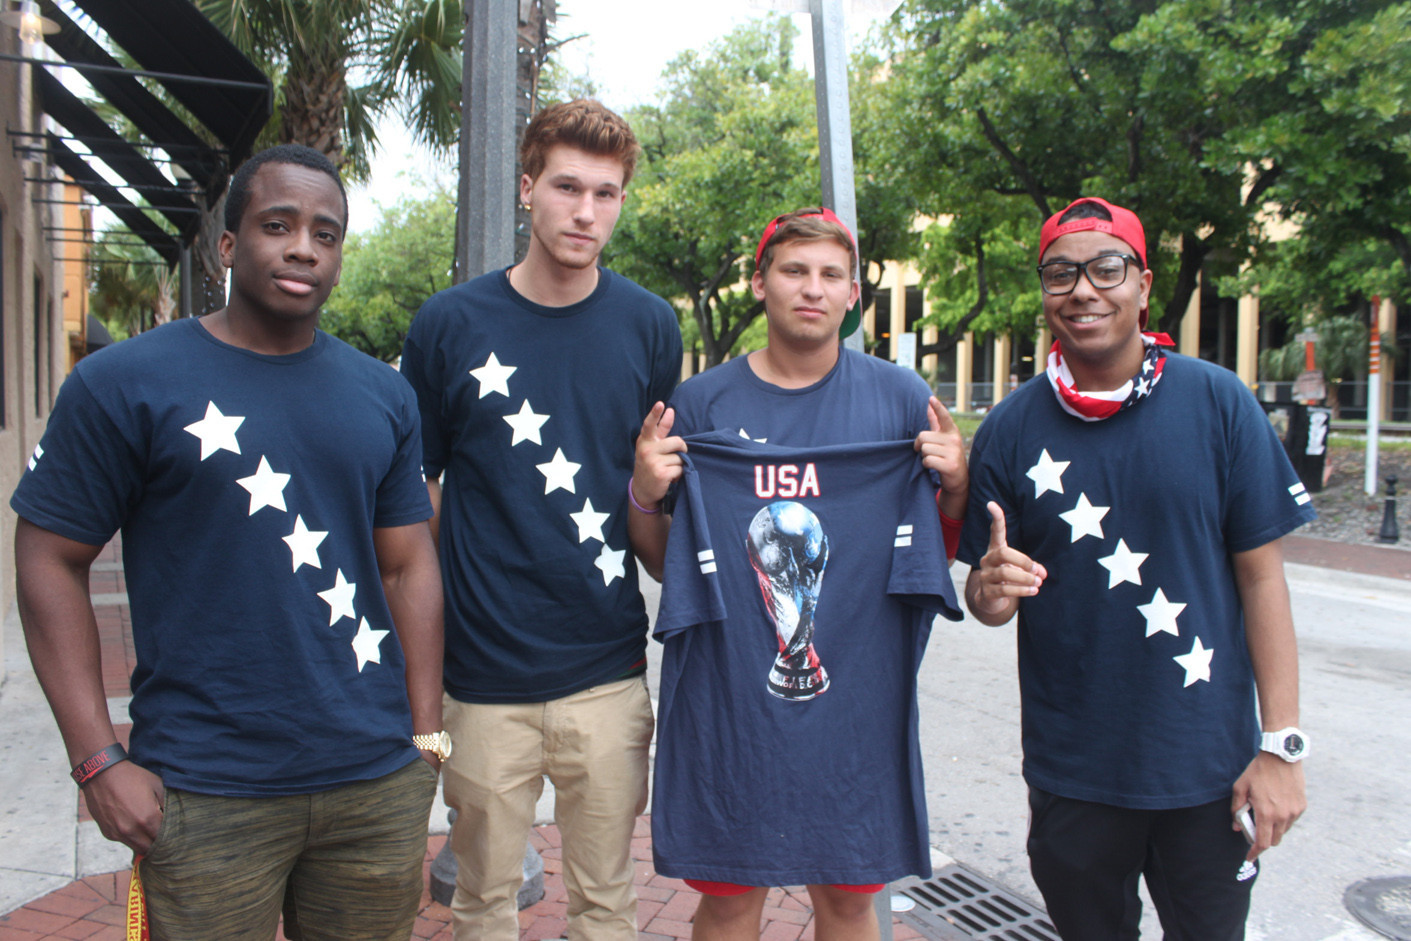 World Cup fans in South Florida - Pictured of World Cup fans in South Florida